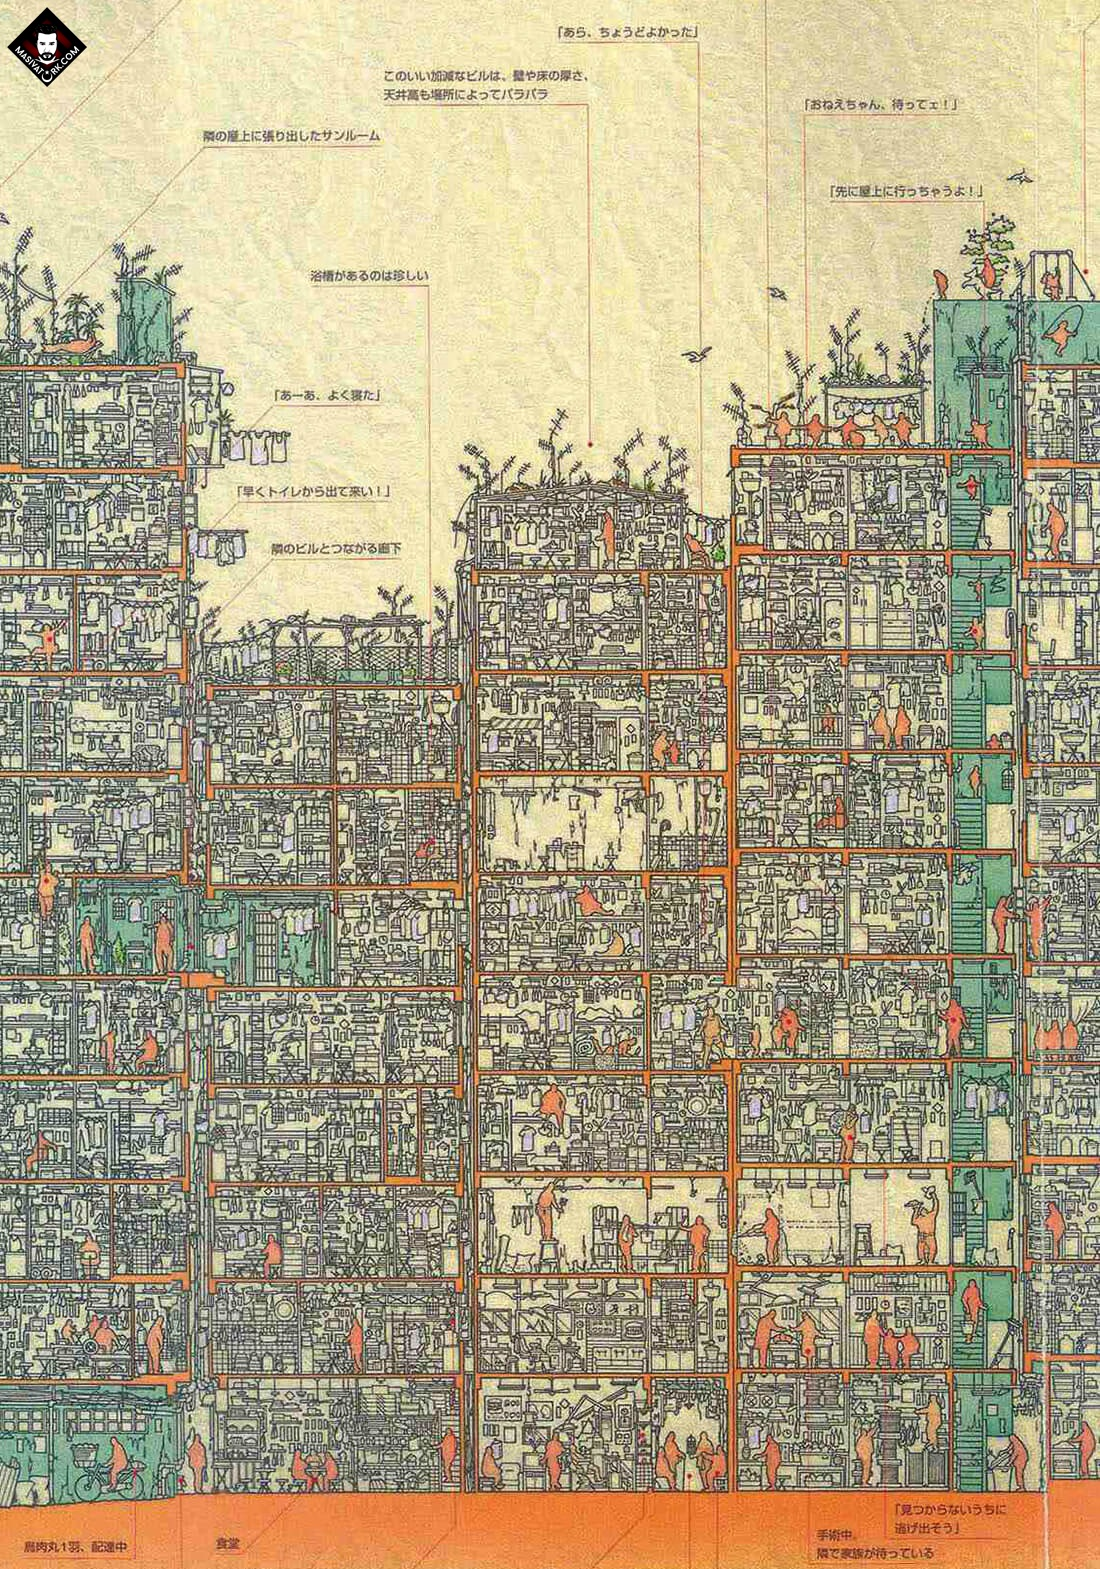 Kowloon Walled